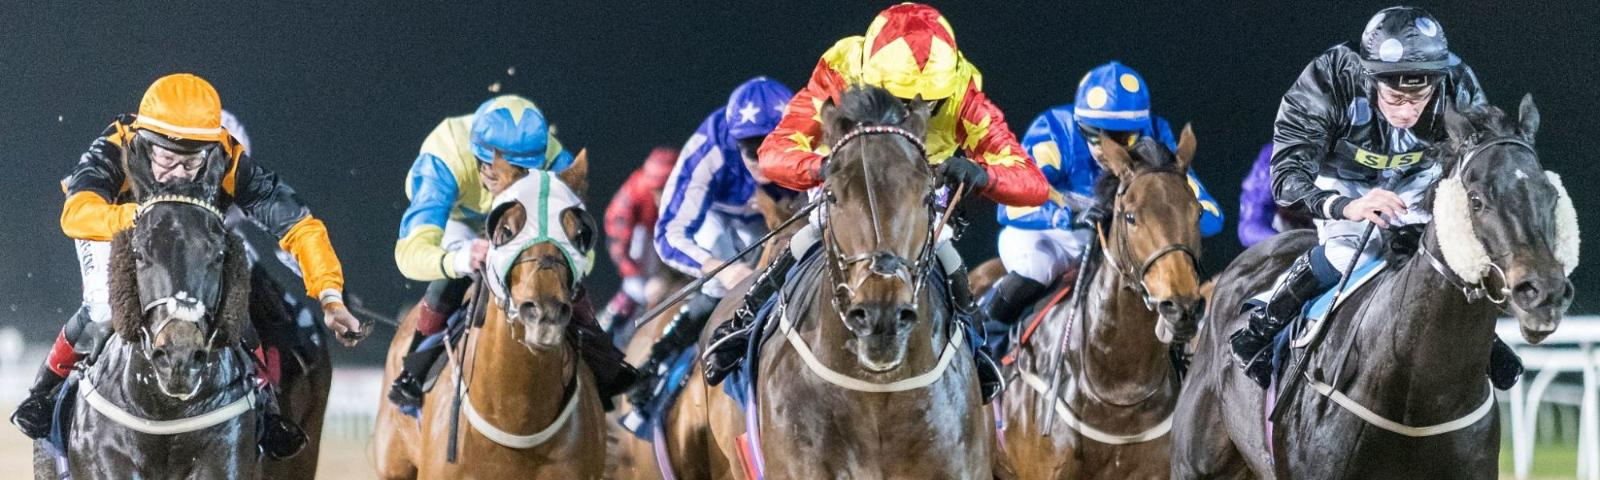 A group of racing horses very close to the camera. The background shows the night sky.